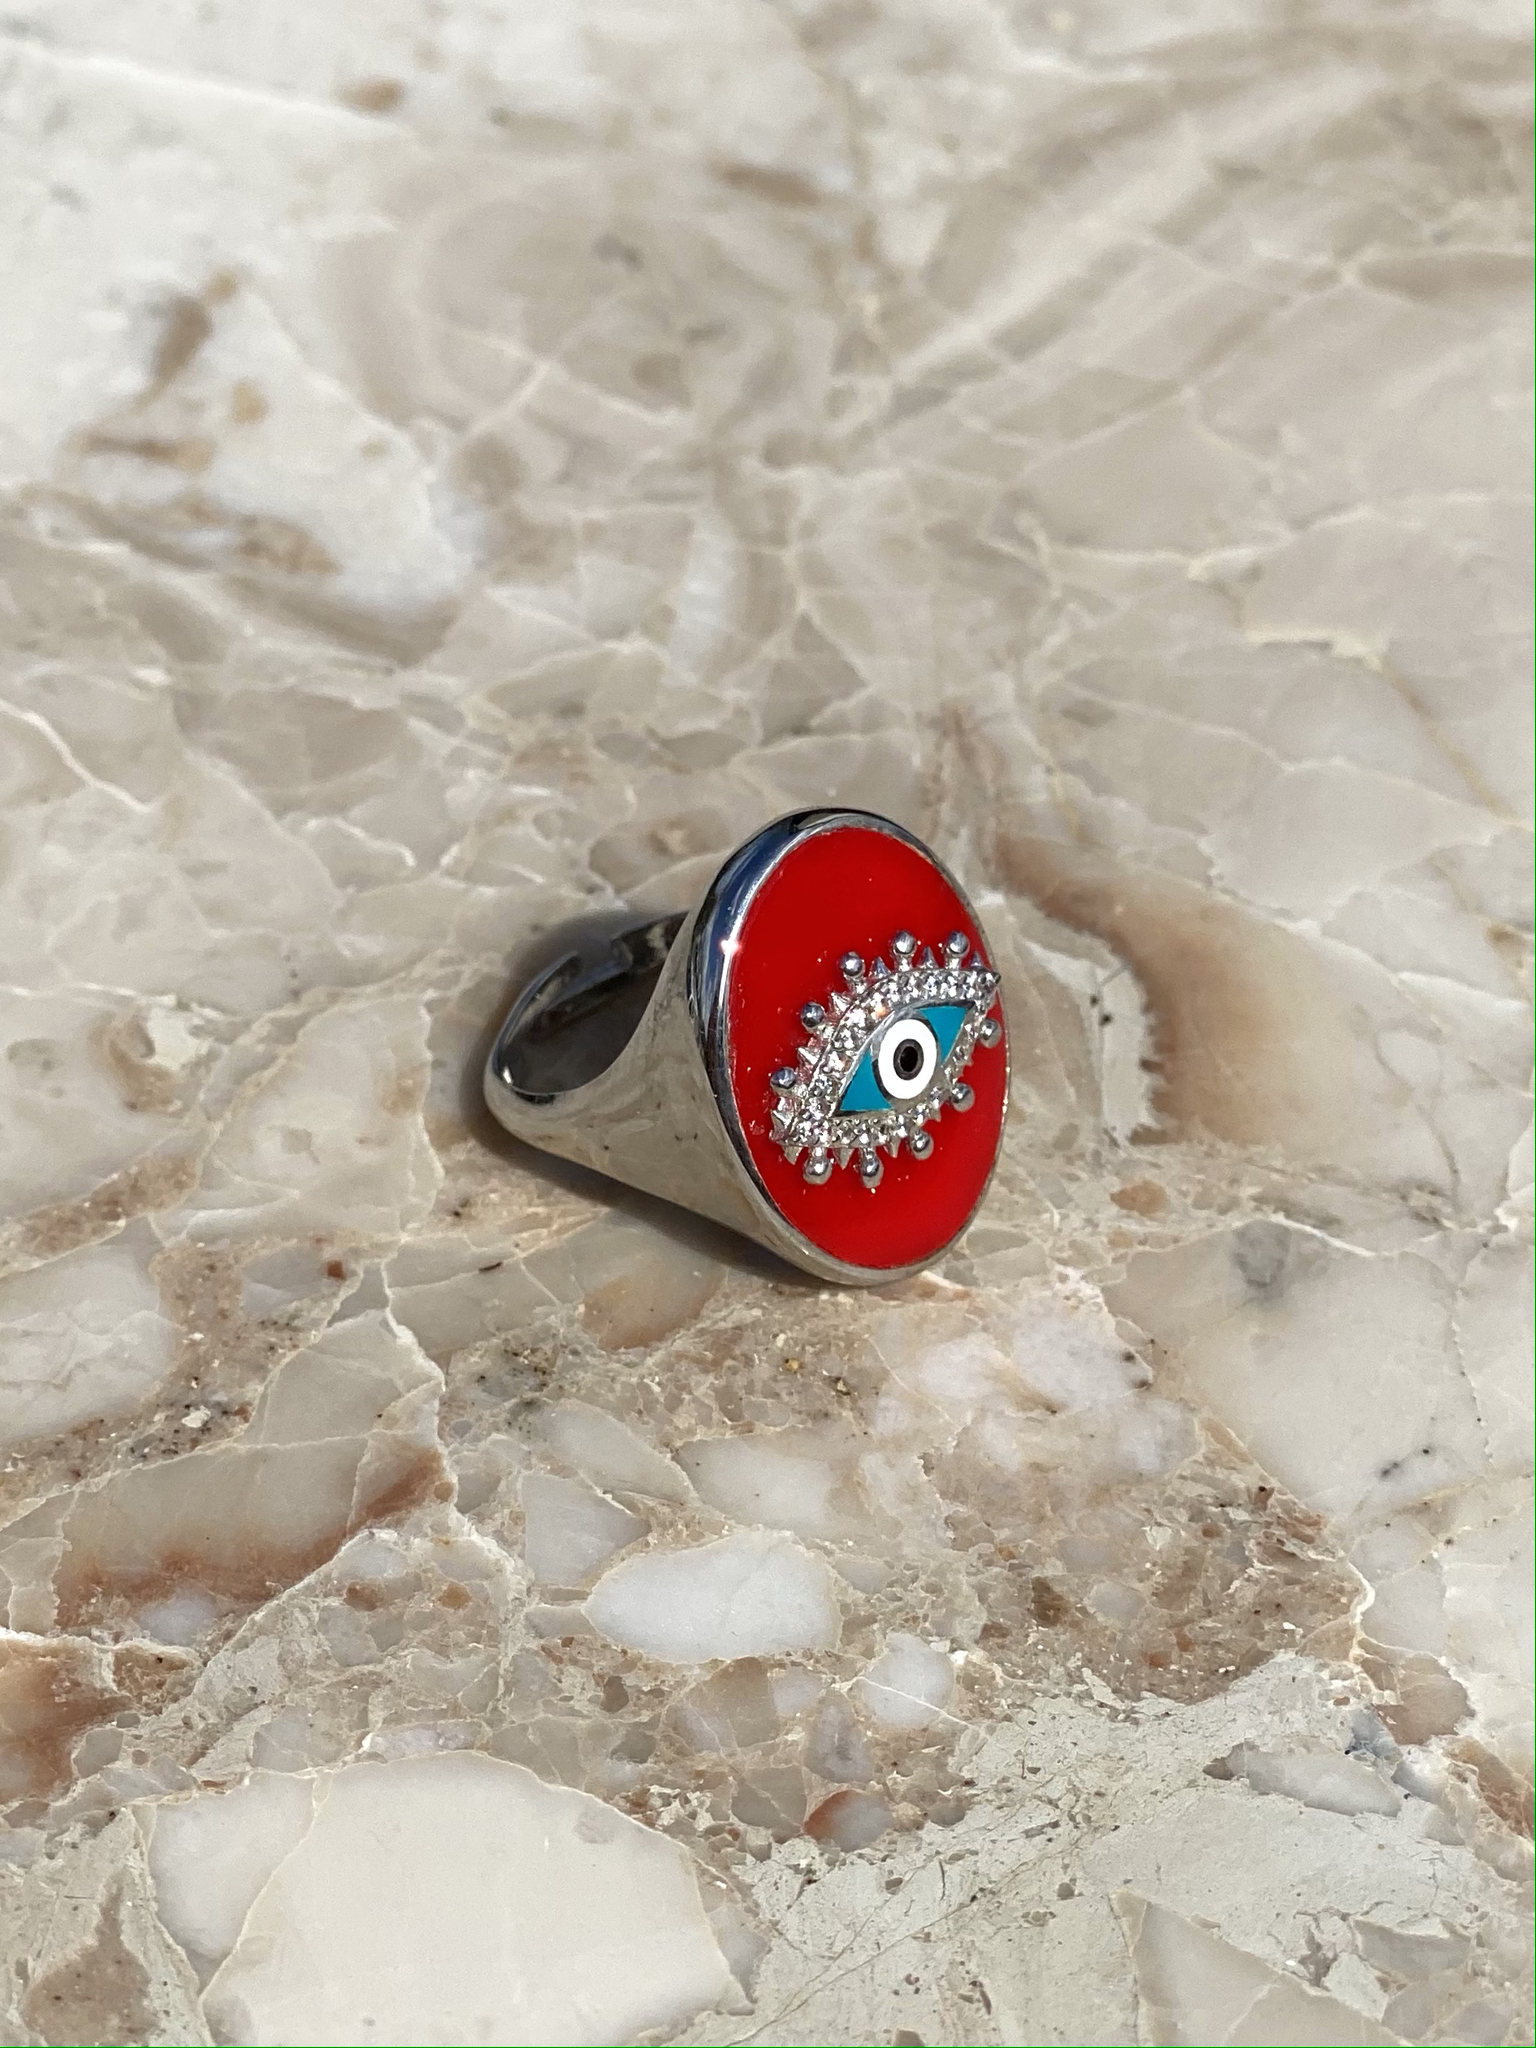 The Eye signet ring in silver with red and blue enamel